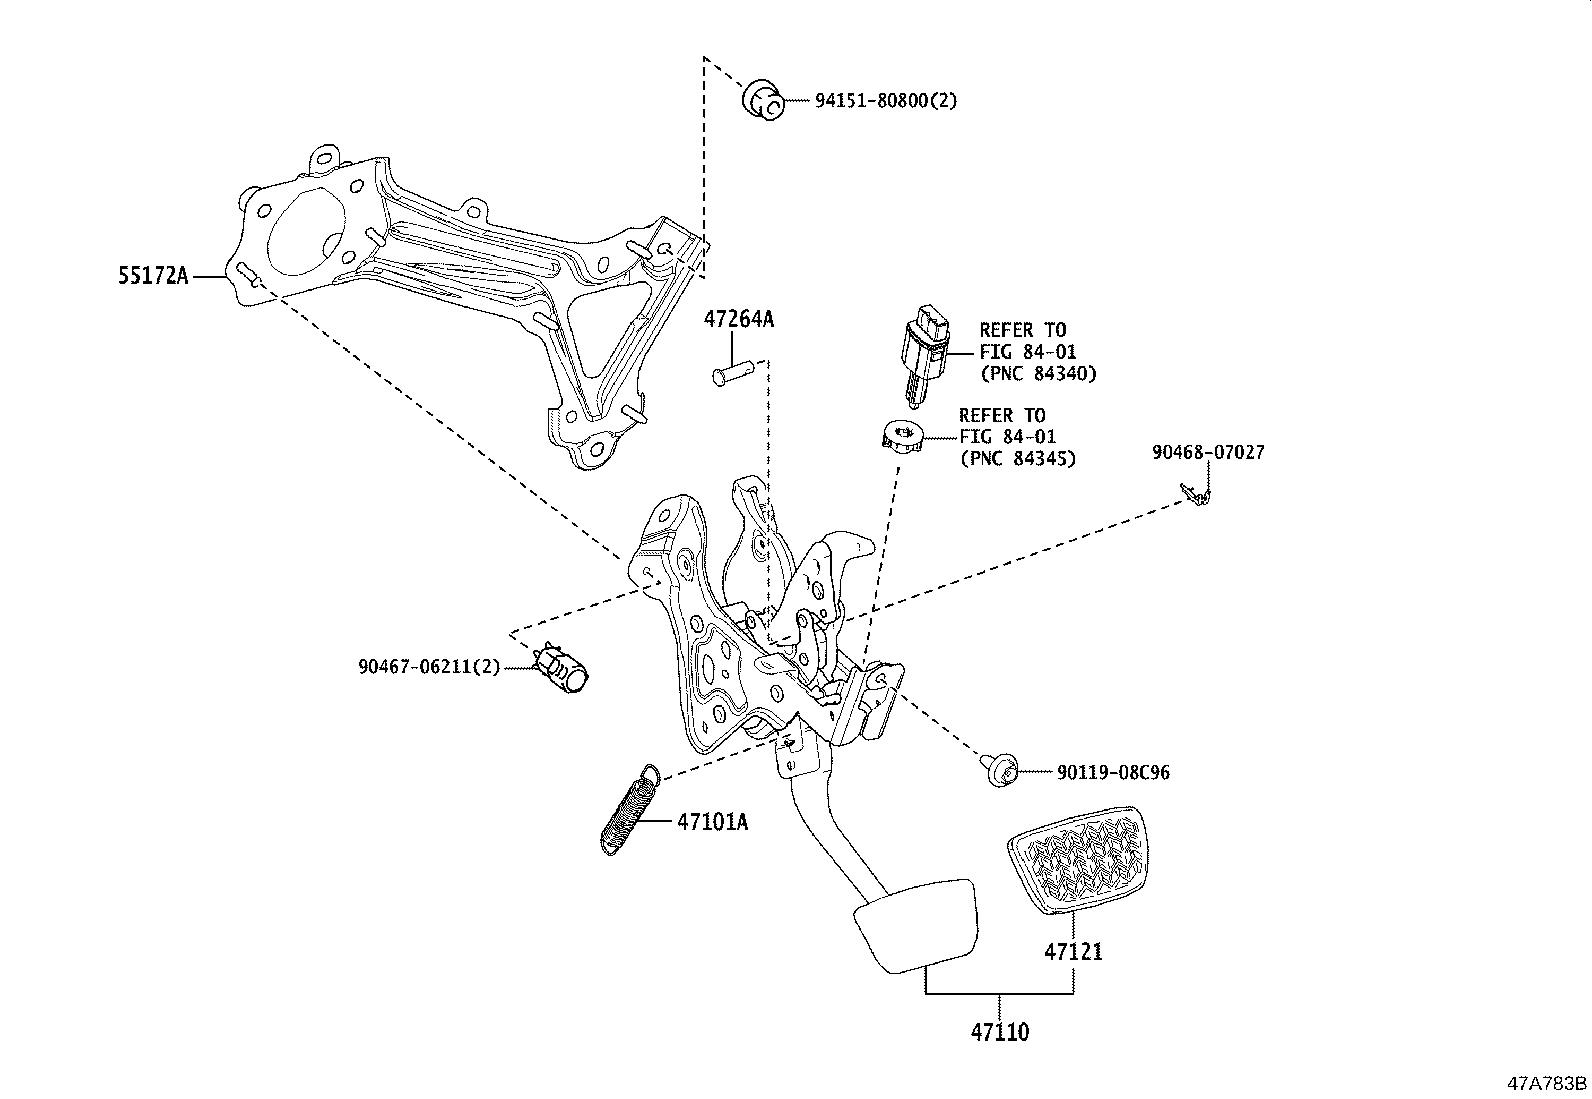 Toyota Camry Pin For Push Rod With Hole For Clutch